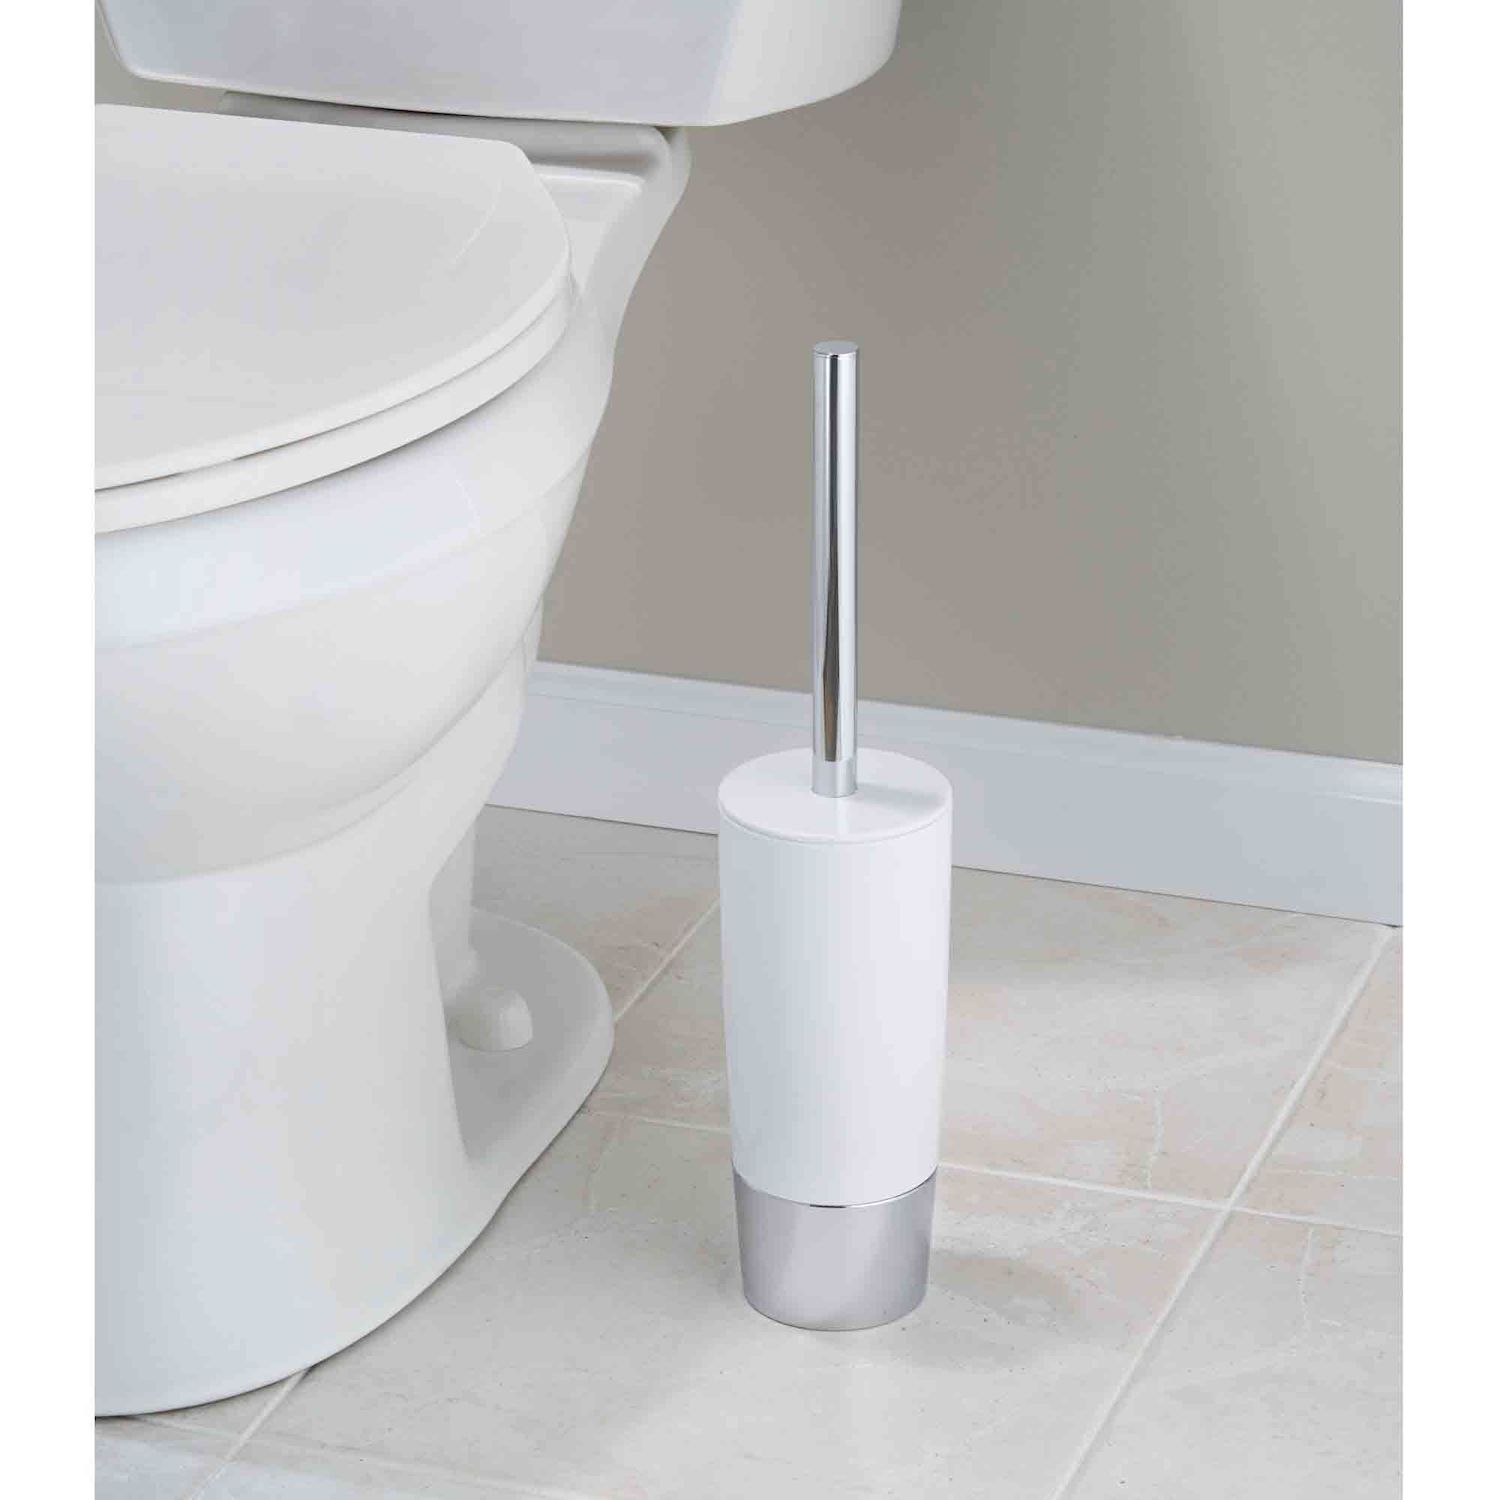 INTERDESIGN DUETTO TOILET BOWL BRUSH AND HOLDER TOILET BRUSH